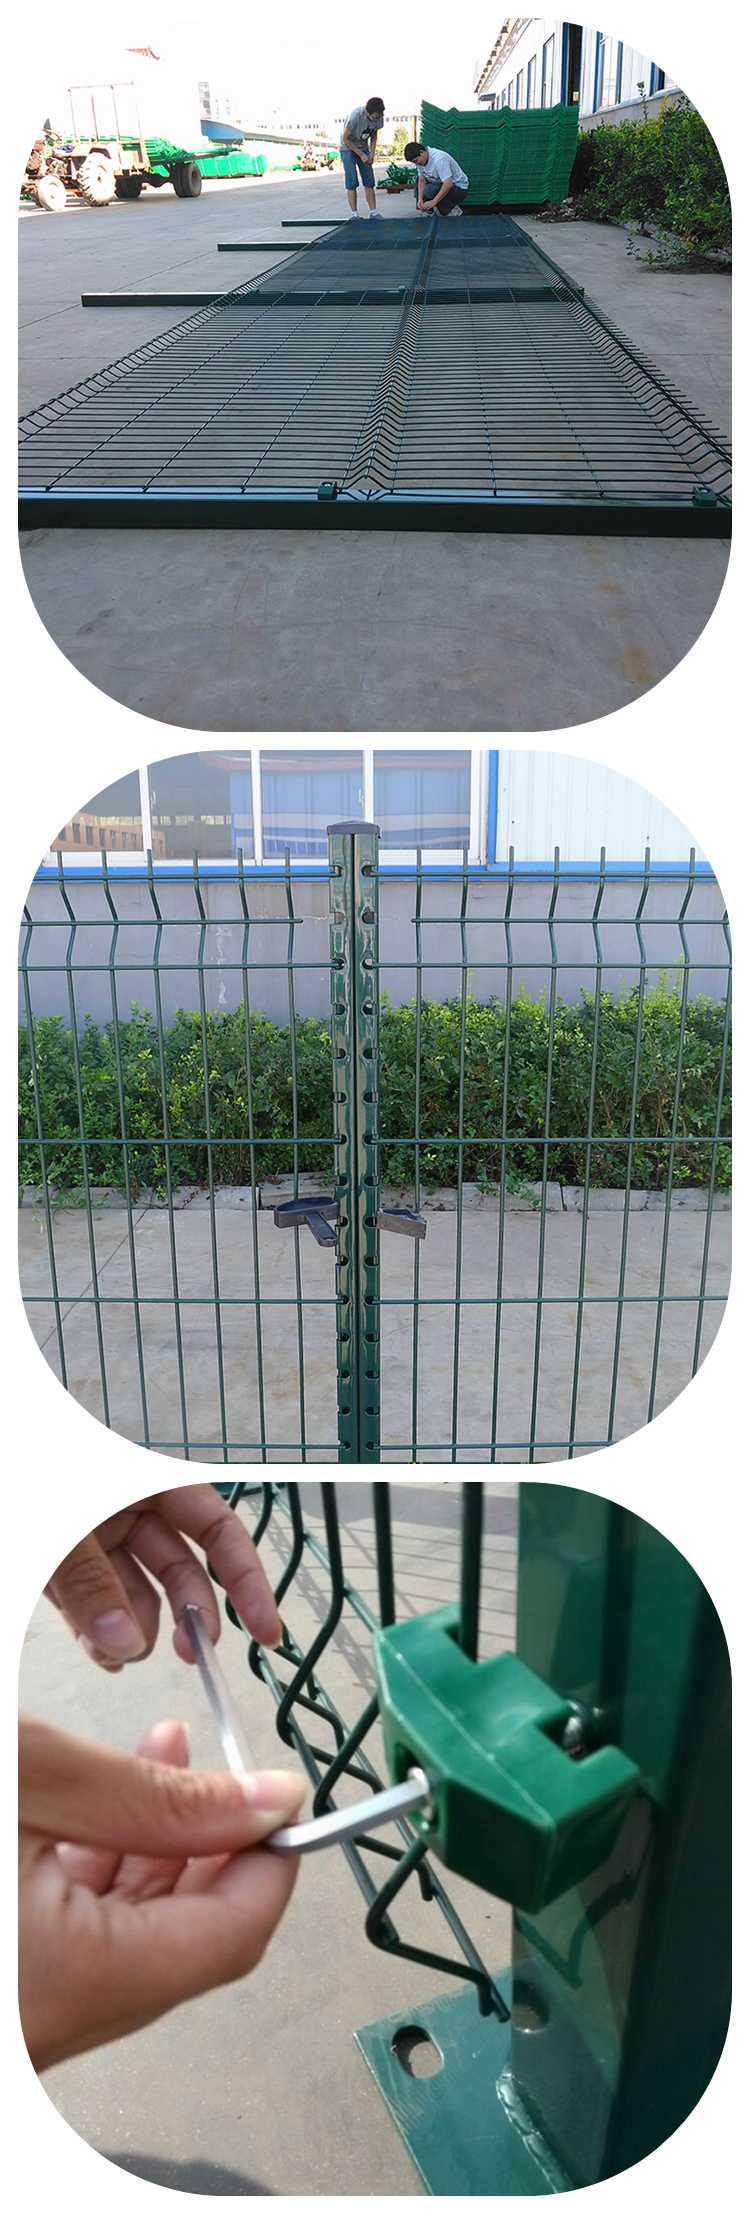 Garden Welded Wire Mesh Metal Panels Curvy